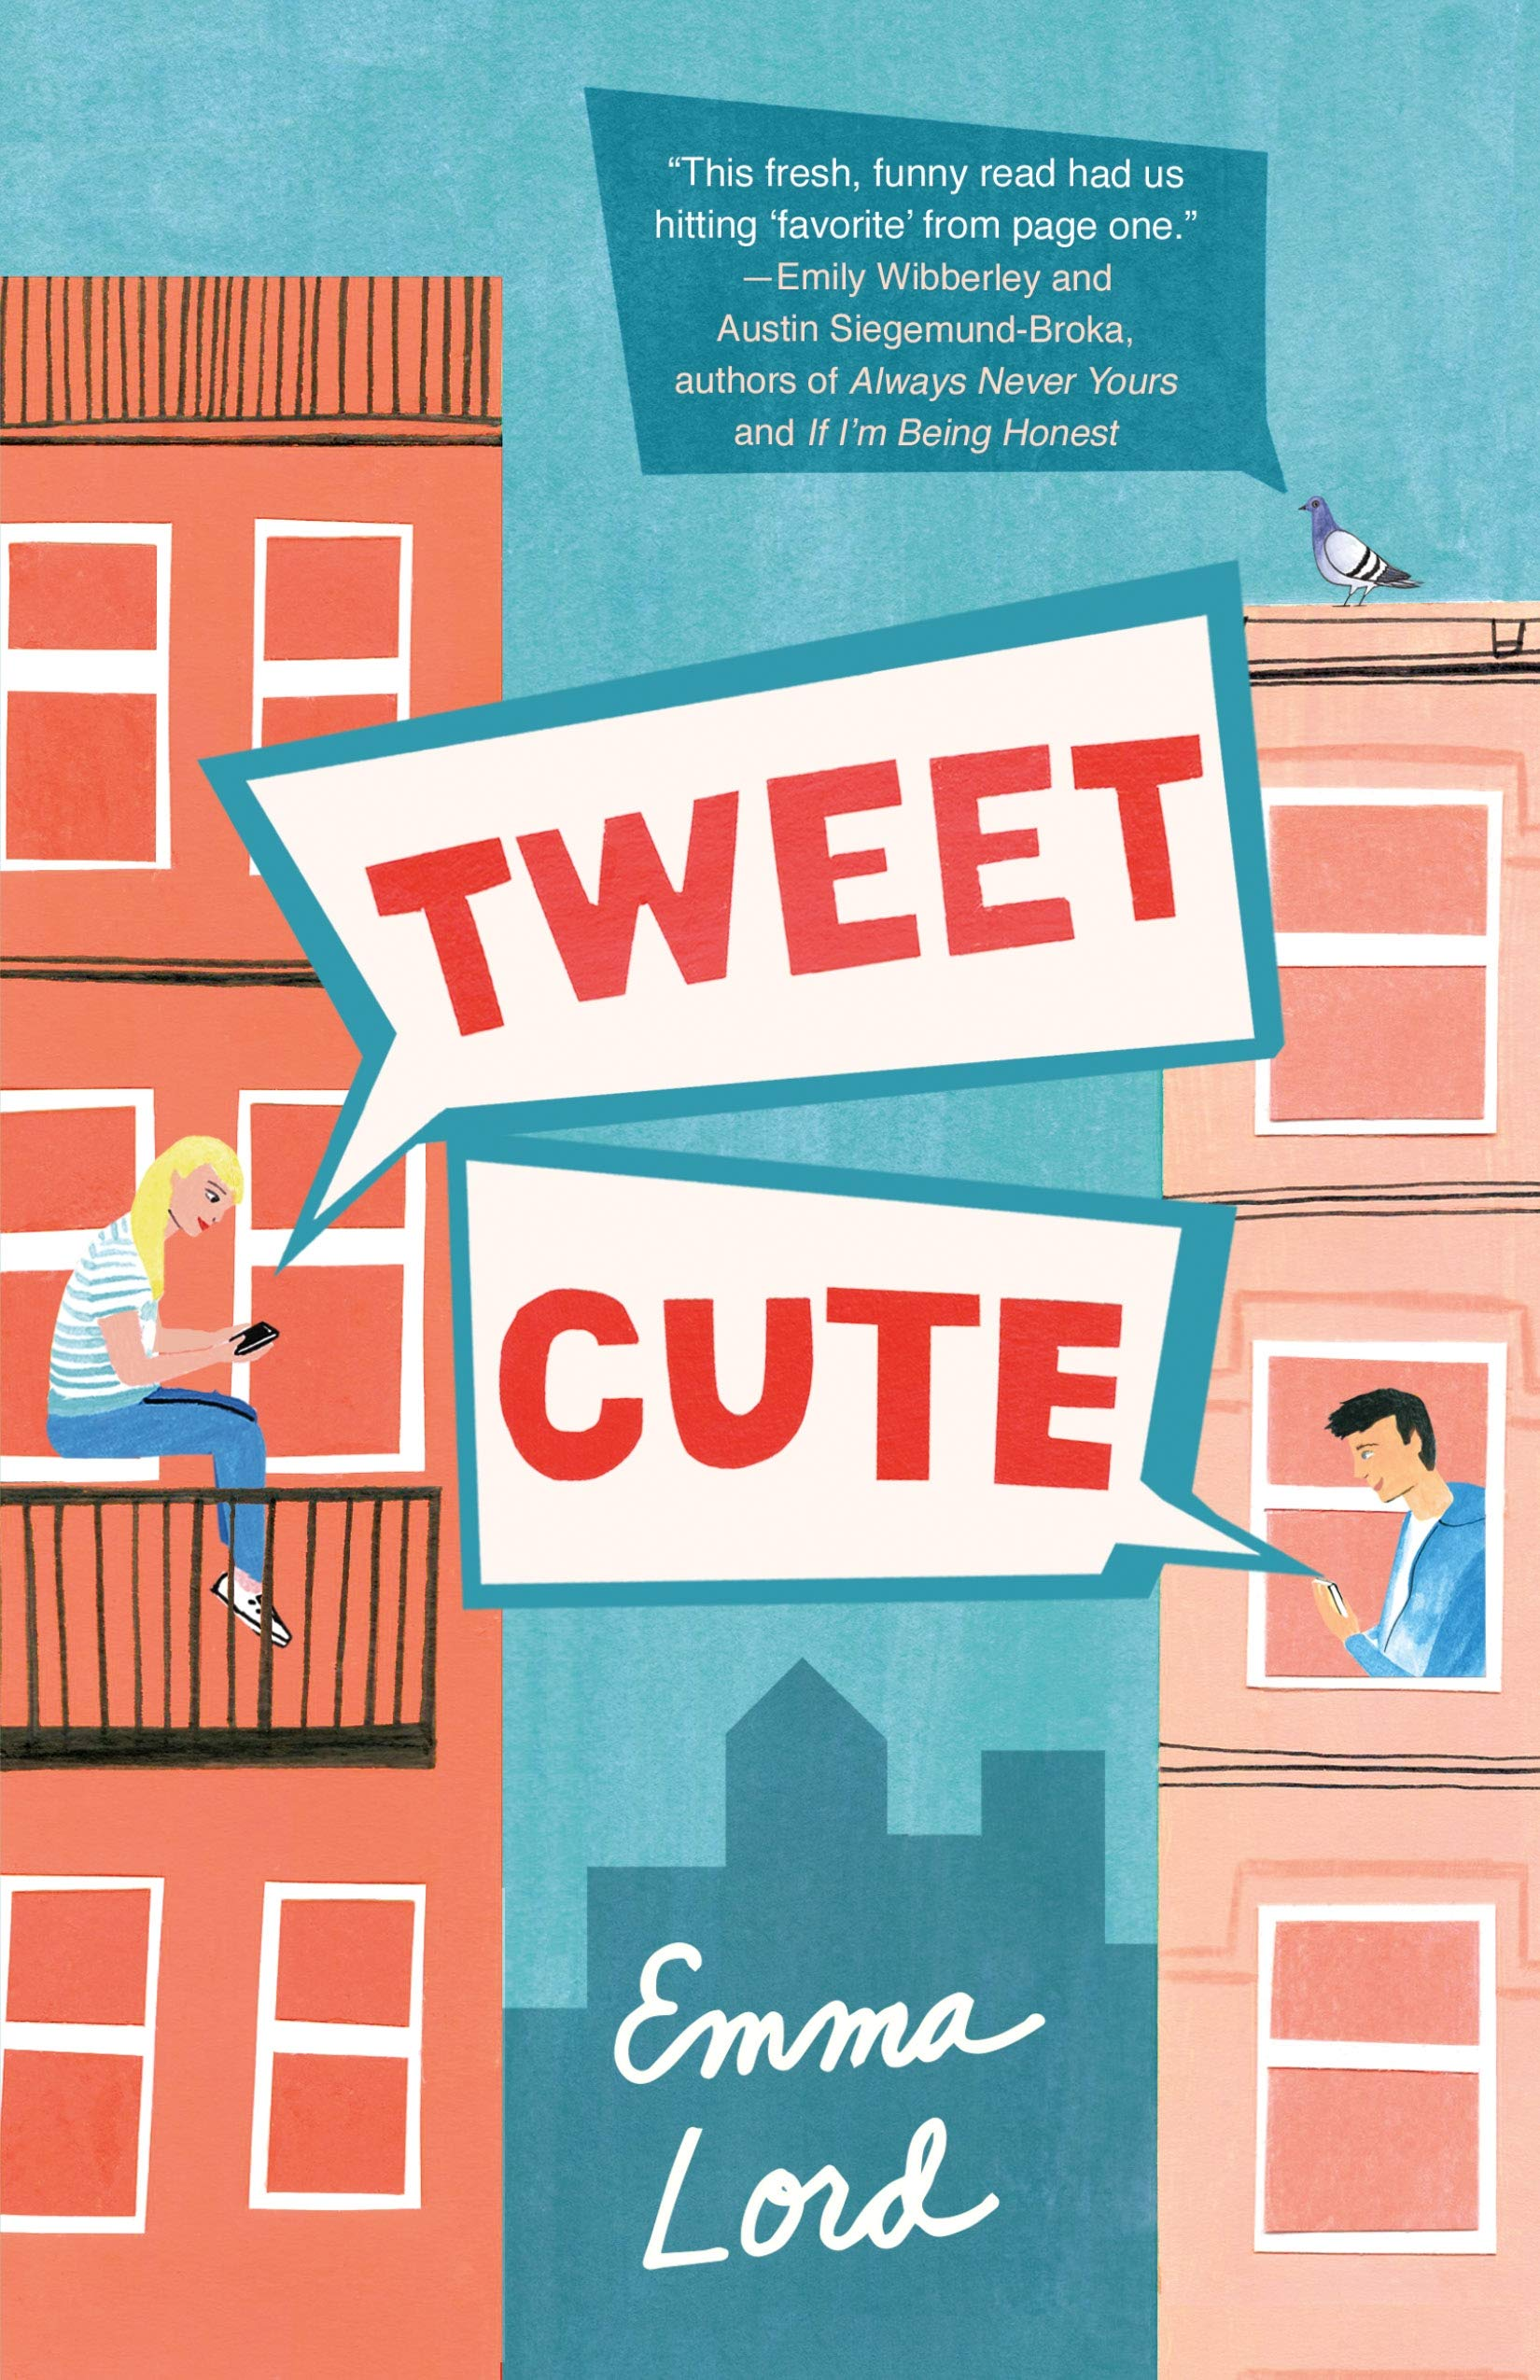 The new YA rom-com Tweet Cute is exactly what fans of To All The Boys need to read next